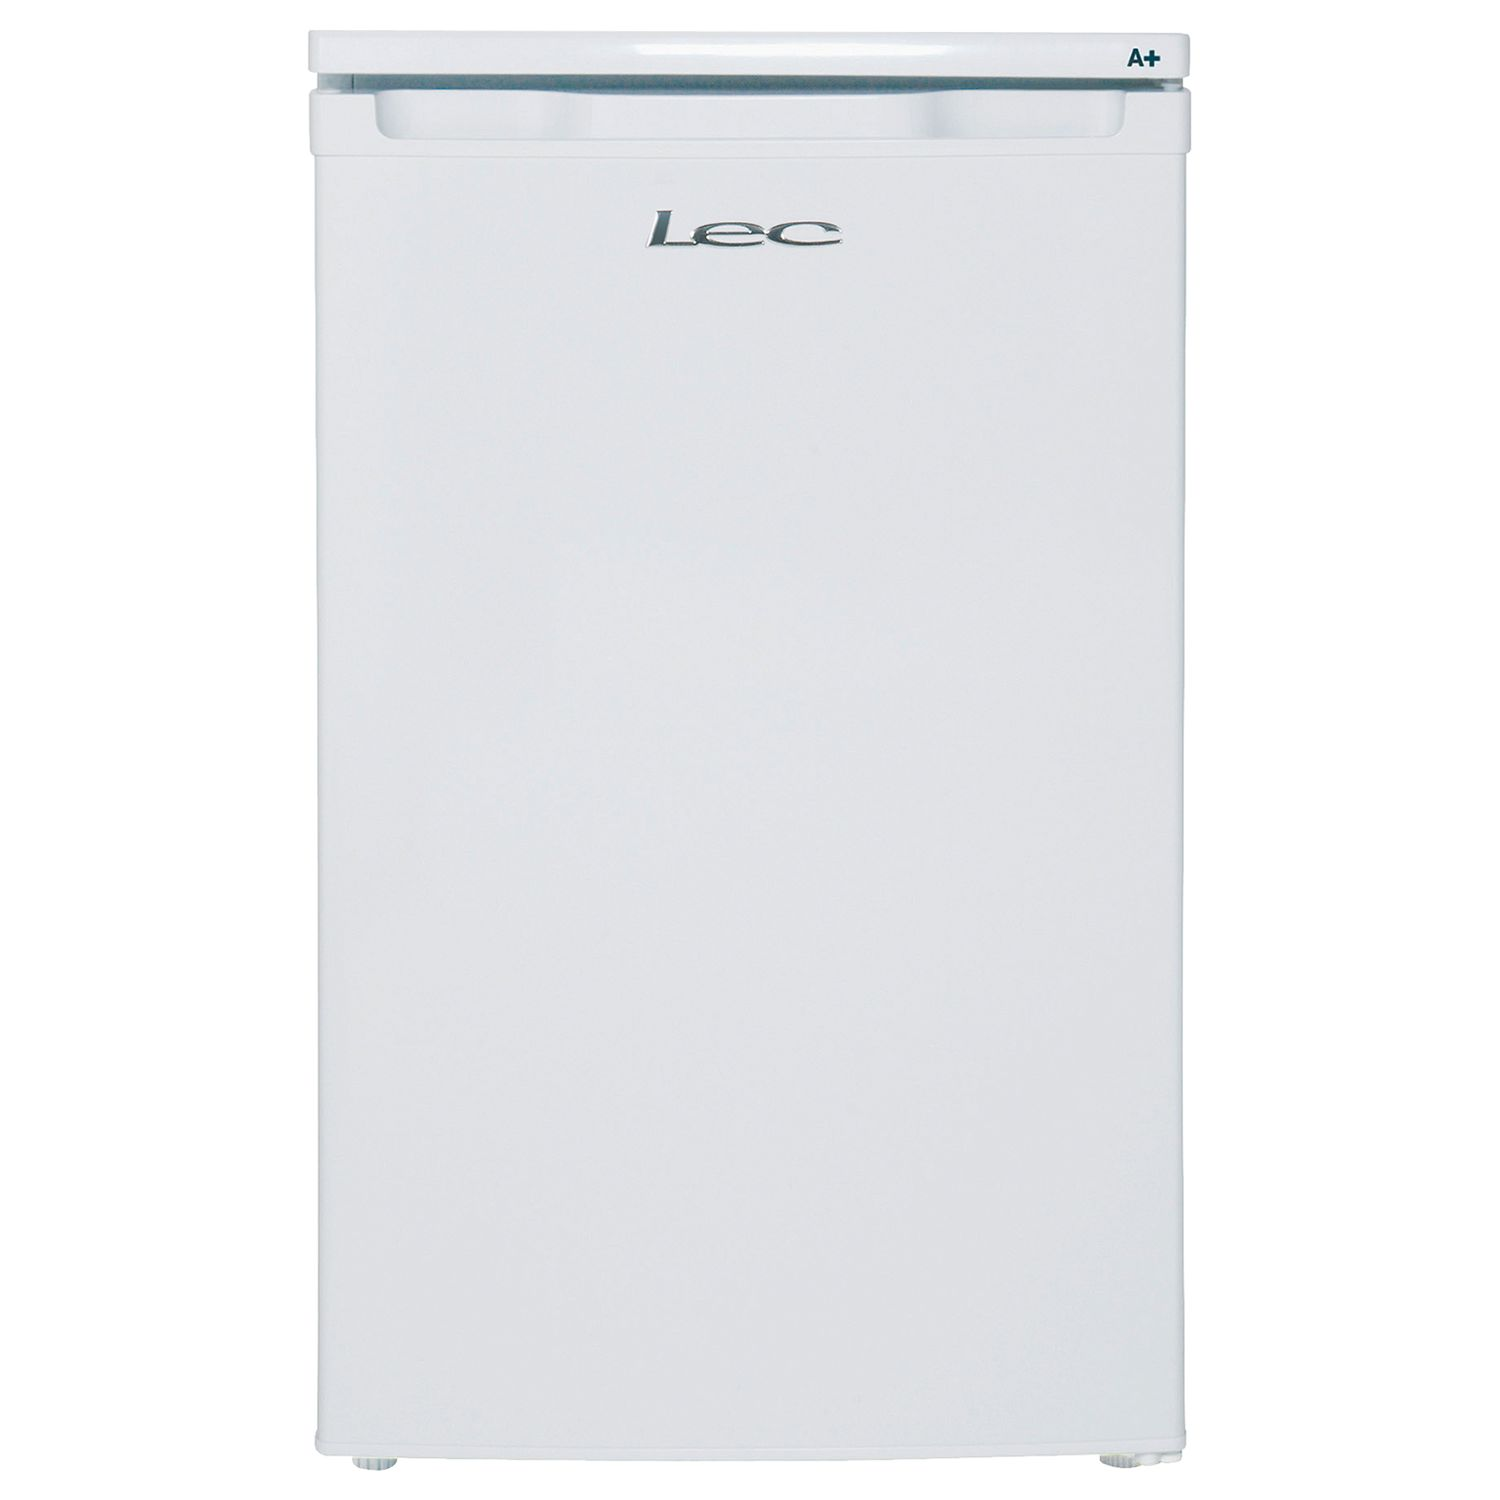 LEC Lec R5010W Fridge with Freezer Compartment, A+ Energy Rating, 50cm Wide, White